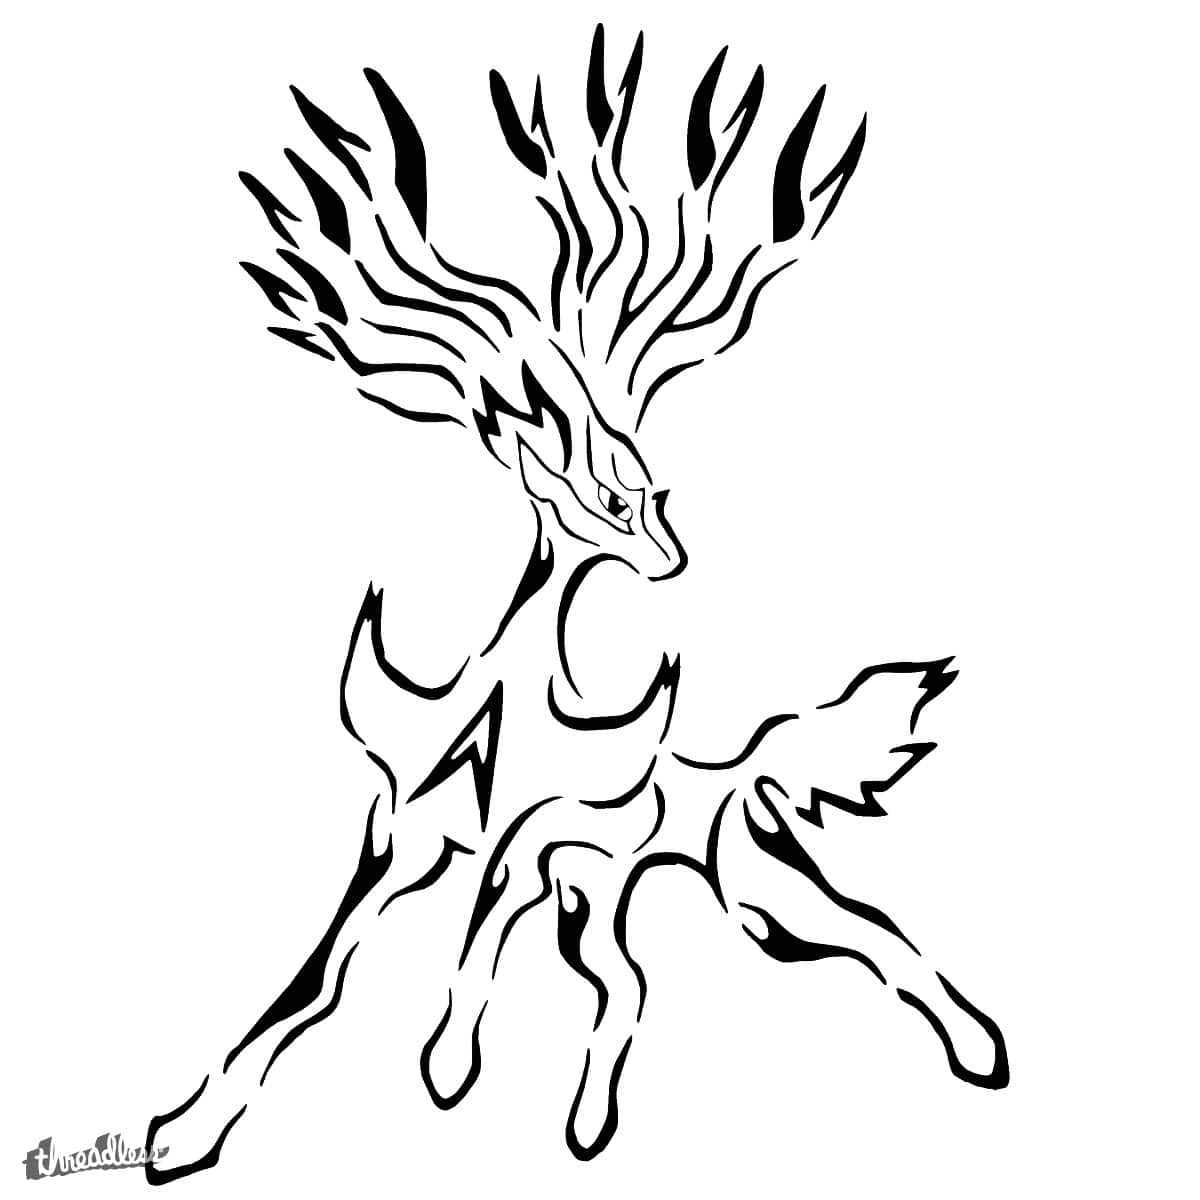 Pokemon Coloring Pages Xerneas : Dessin pokemon xerneas images